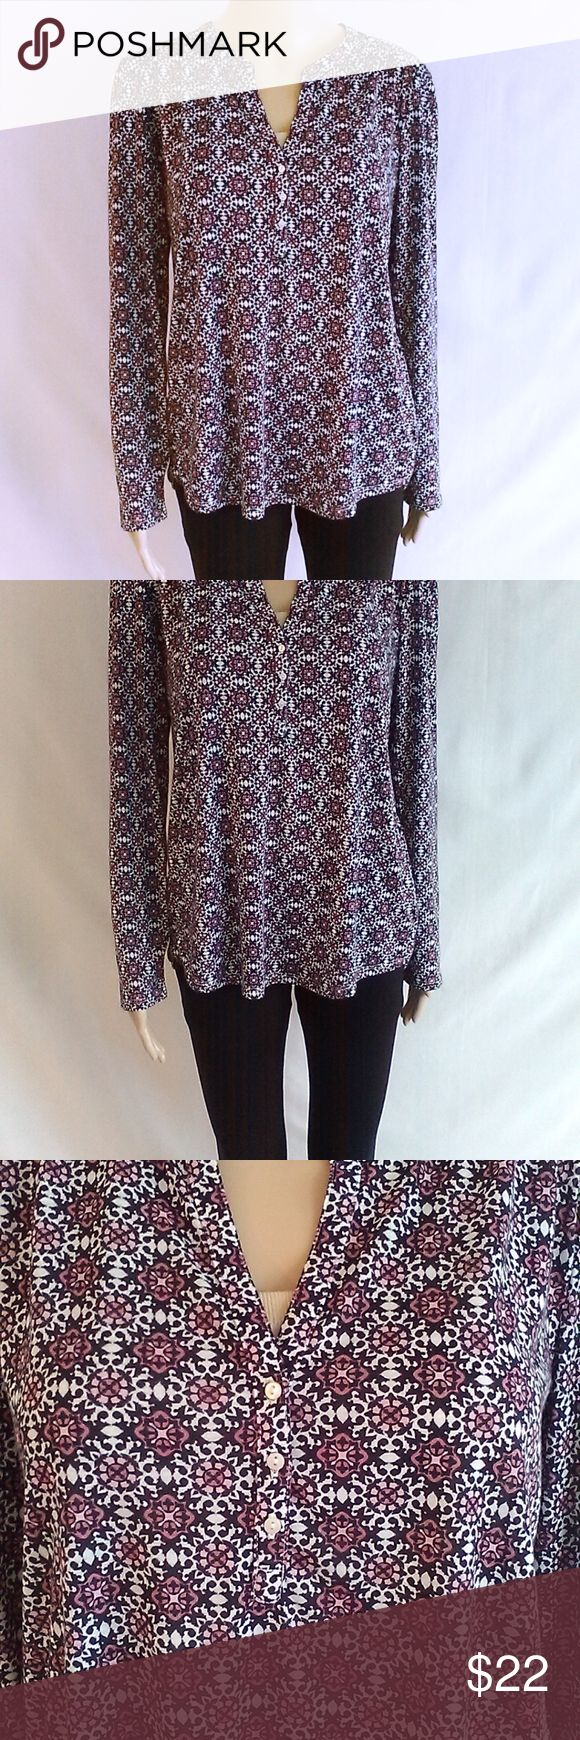 H&M Long Sleeve Blouse Adorable H&M long sleeve Blouse.  V neck w/ 3 small vertical buttons at the bust Blue, pink, black & white pattern  Size medium  Lightweight, breathable, and comfortable fabric.  In great condition, no flaws.  Mannequin is wearing a nude bandeau, which you can see peaking thru at the v neck this is not part of the top or included in sale.  Make an offer or bundle & save!! H&M Tops Blouses